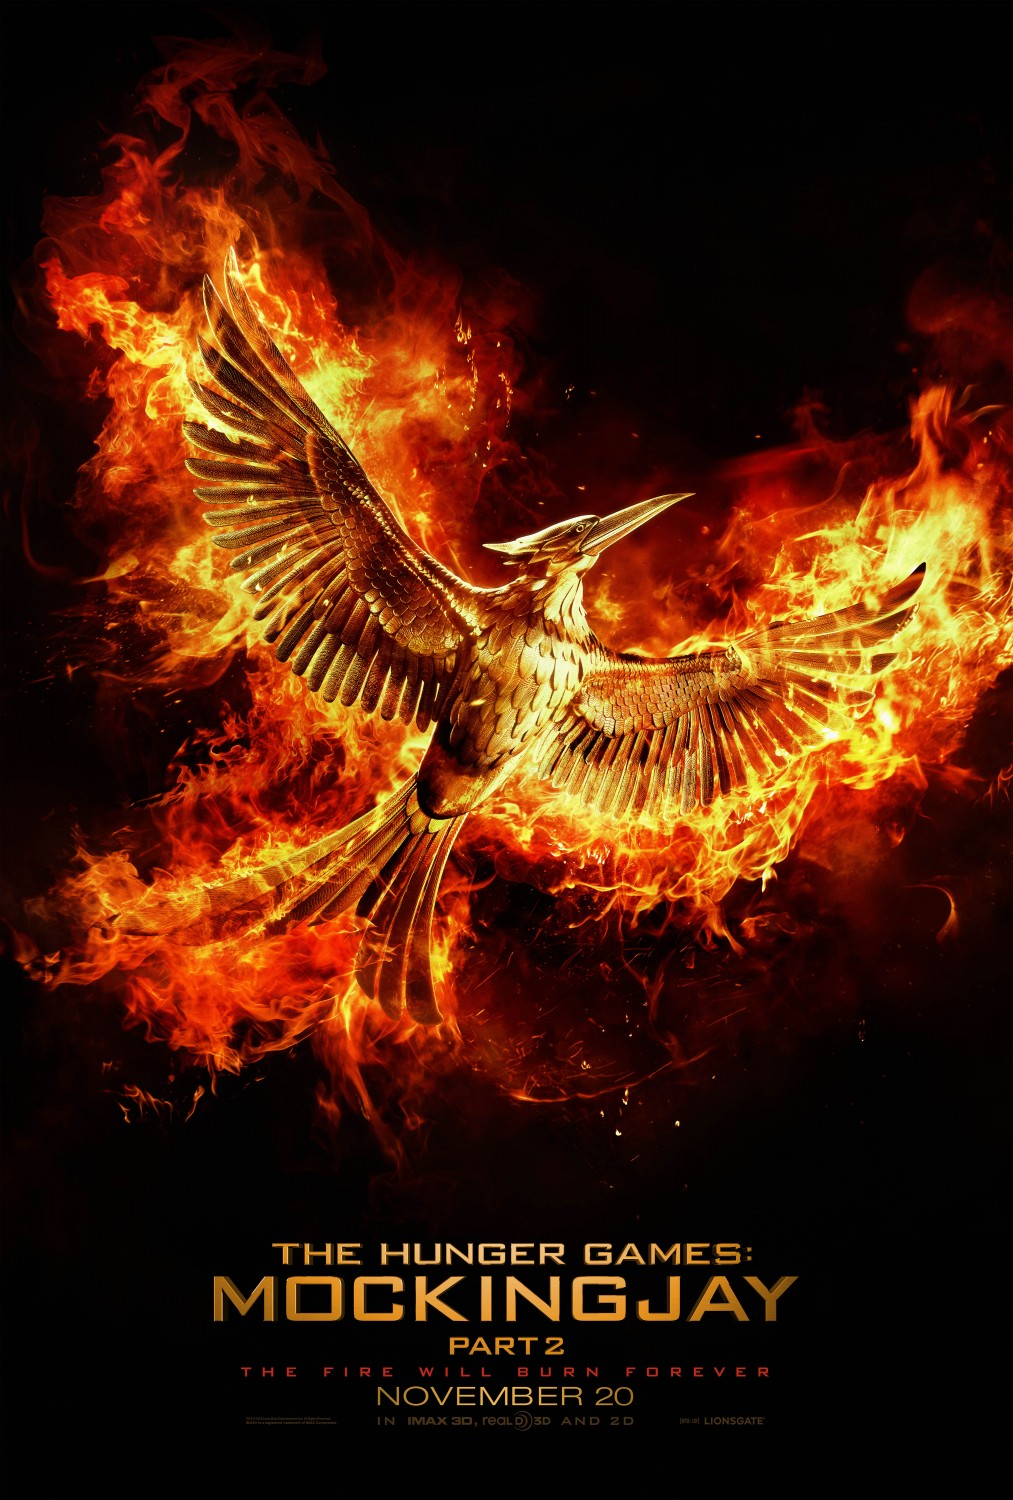 The Hunger Games: Mockingjay - Part 2 (2015) Posters ...